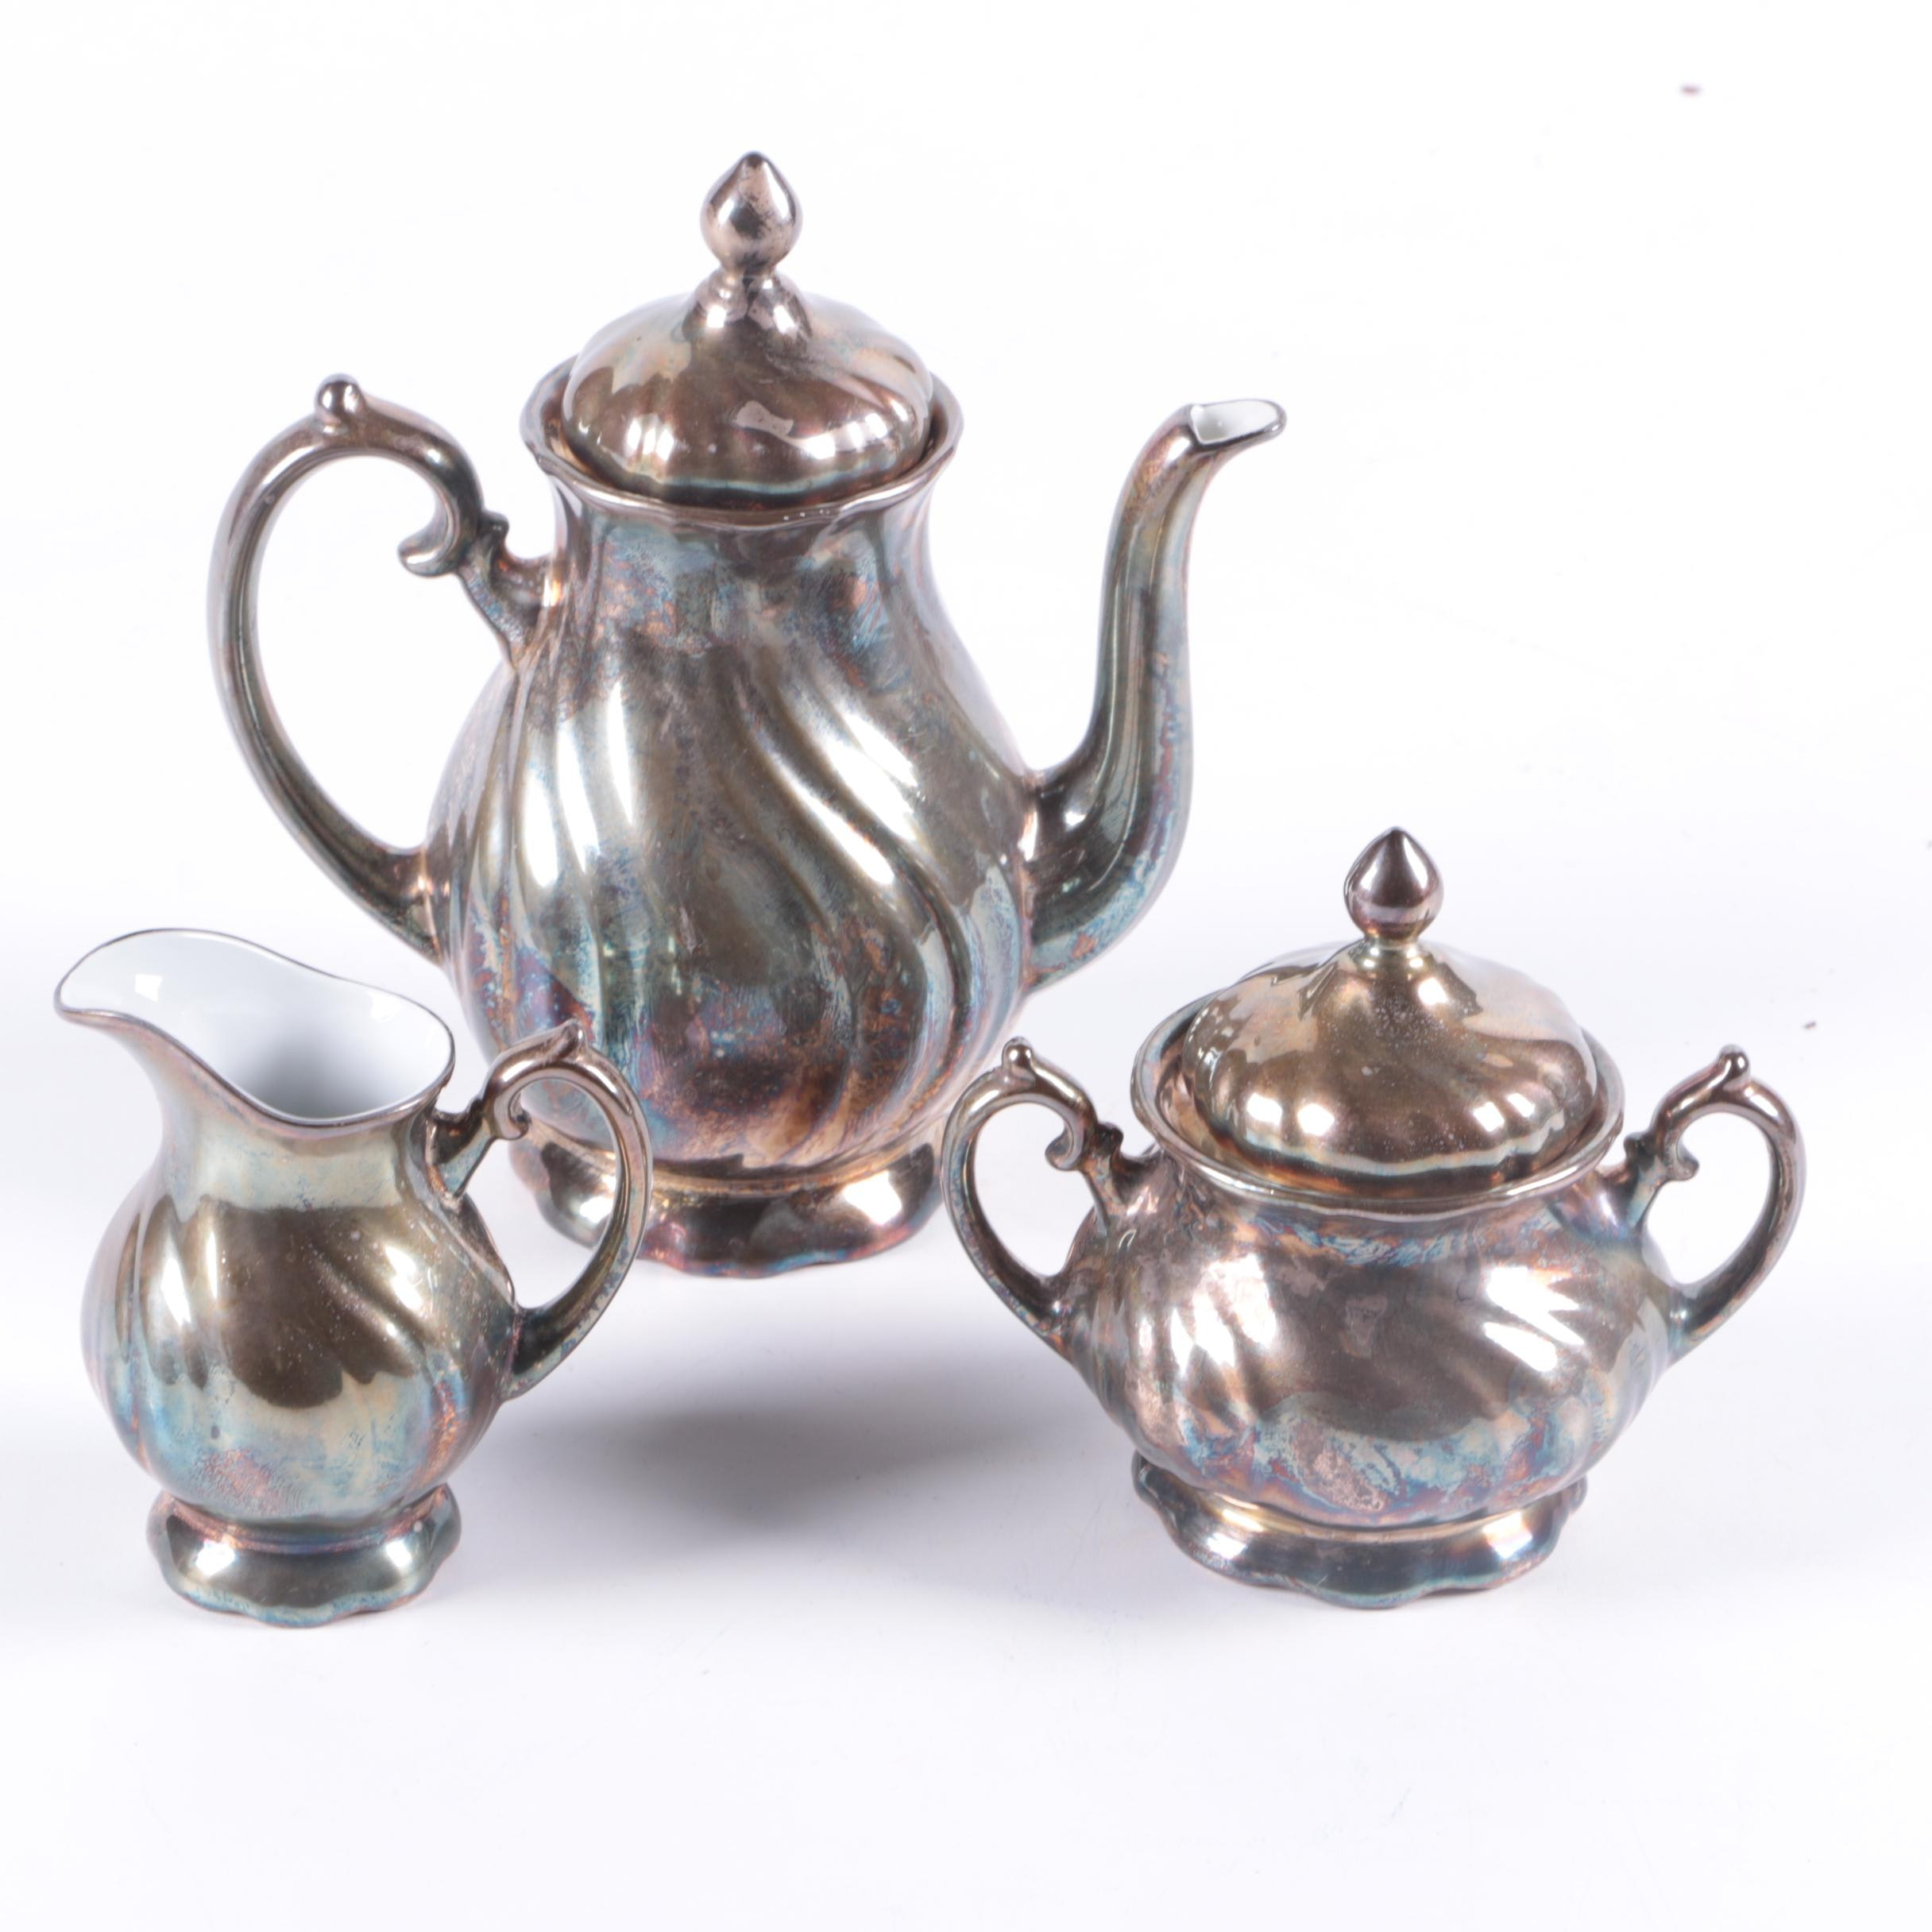 WMF German Silver Plate and Porcelain Lined Tea Set